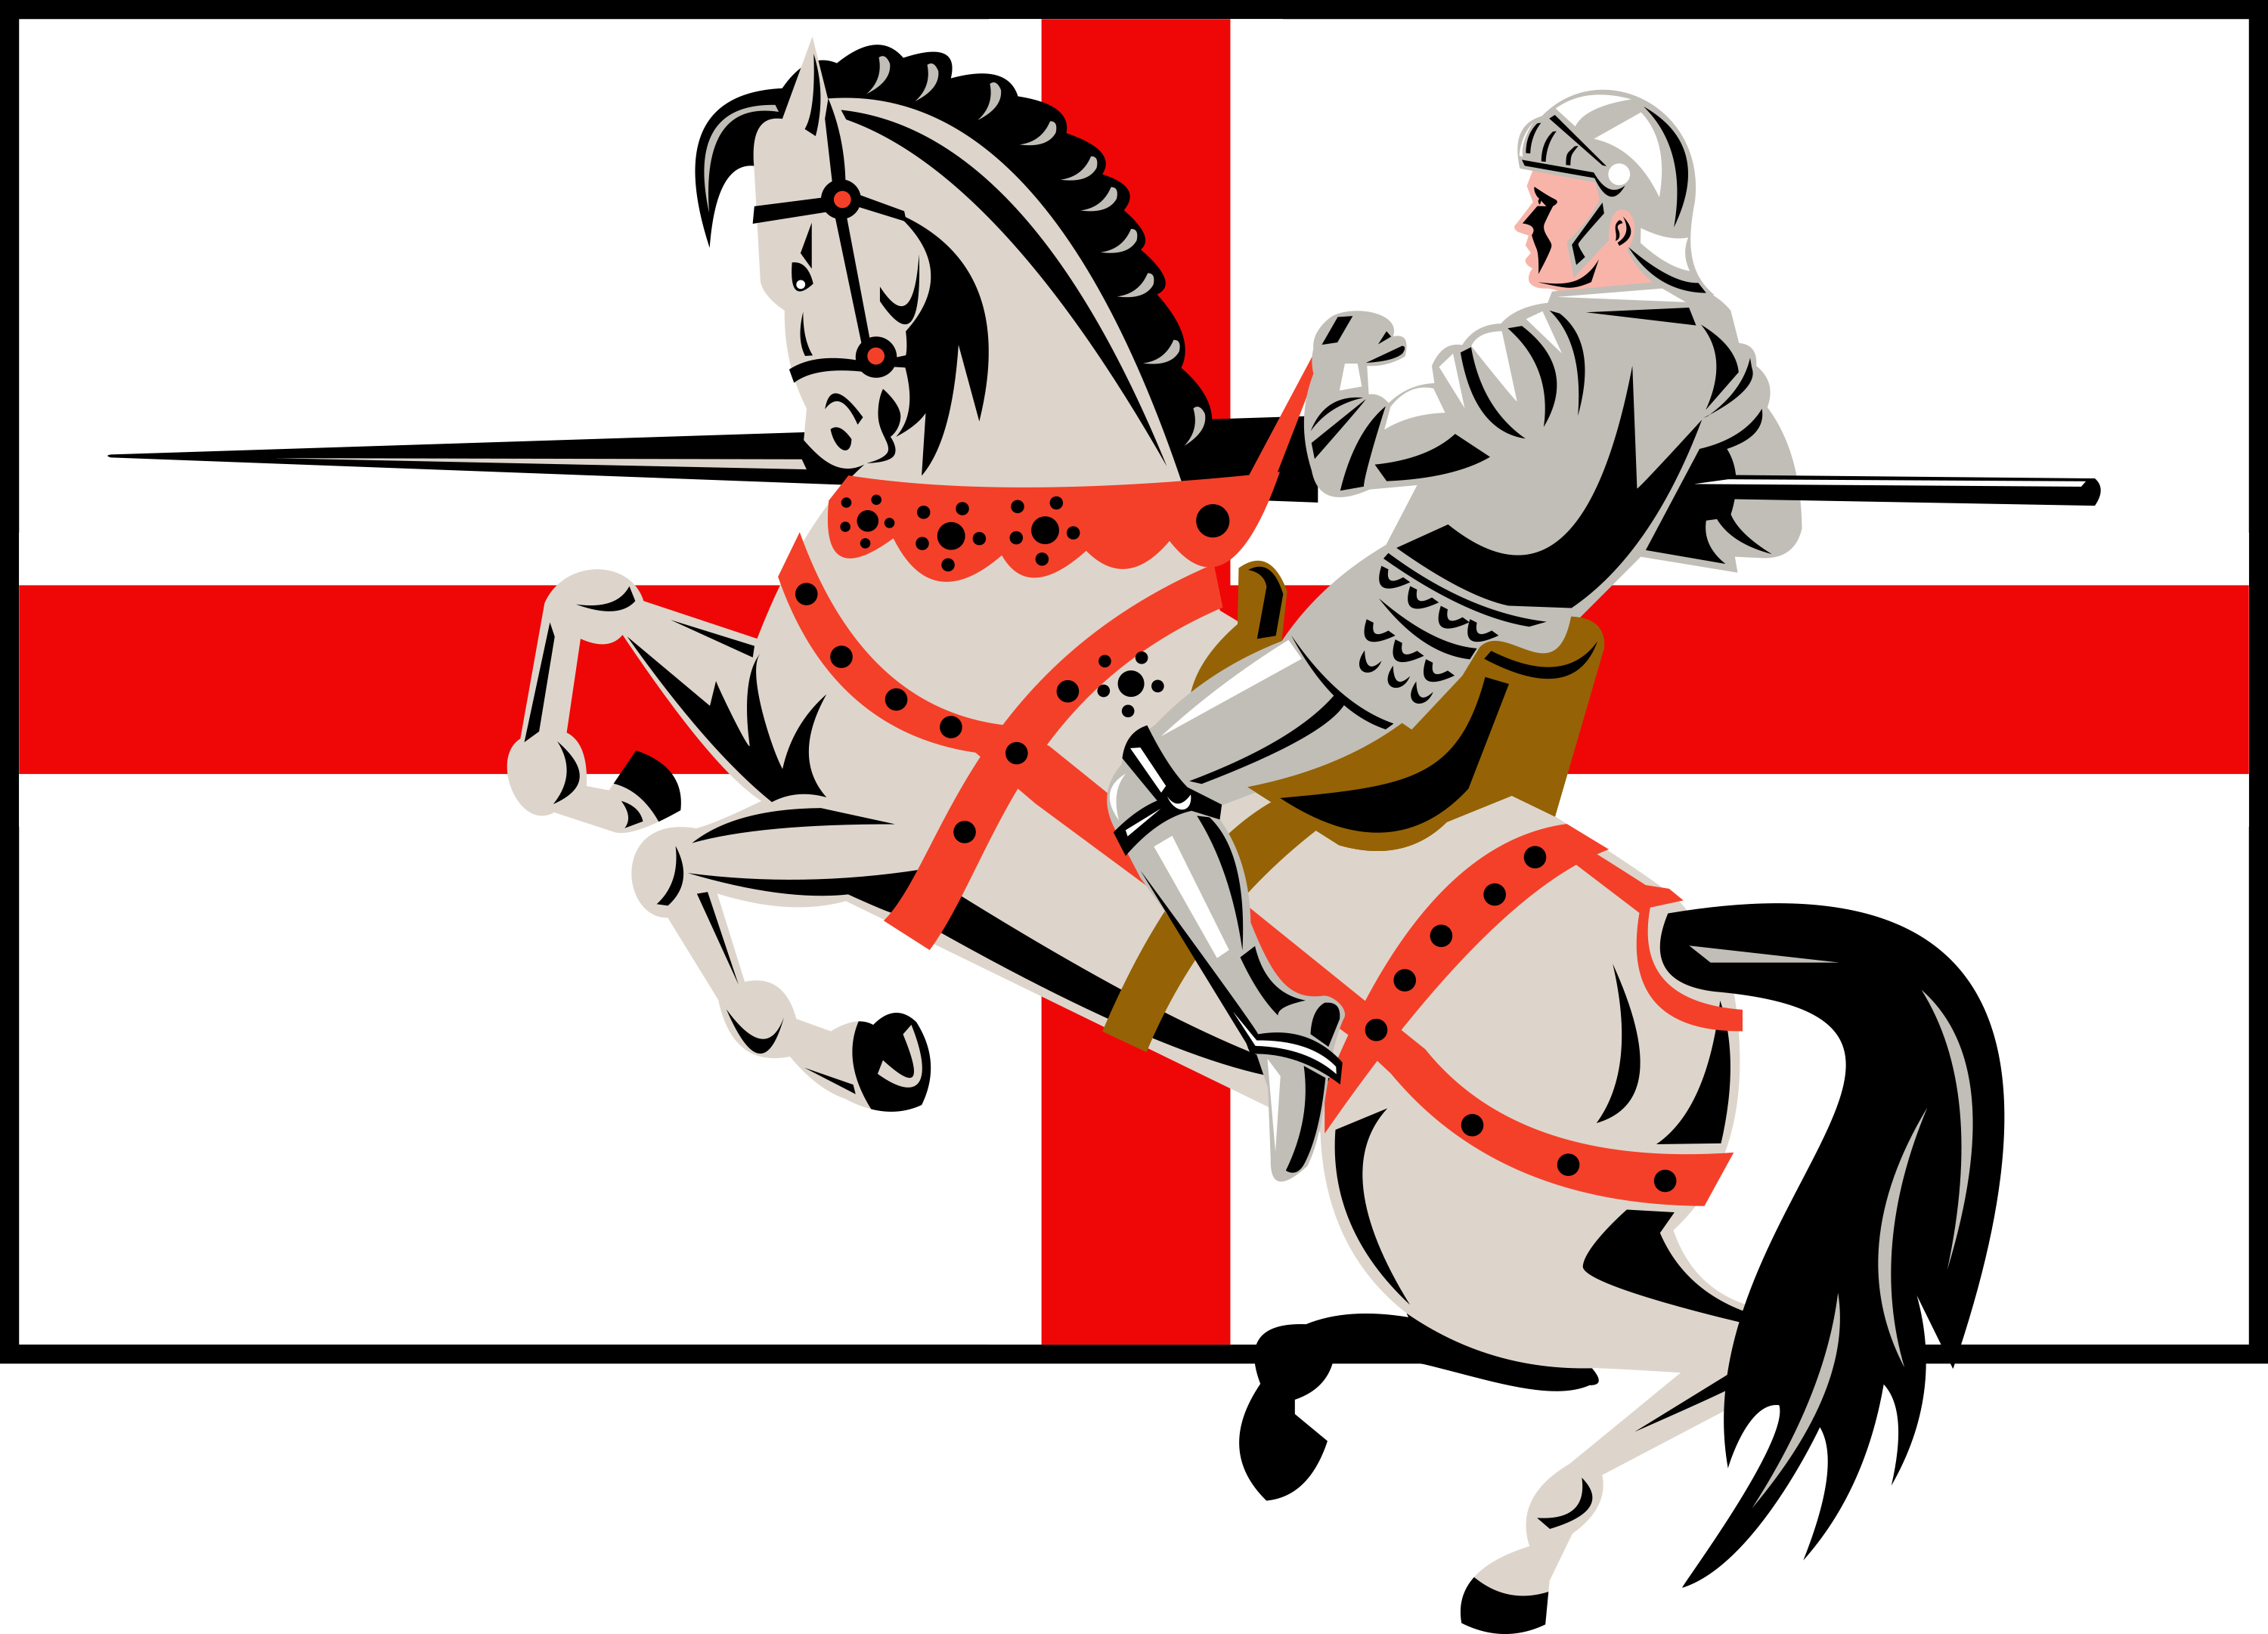 St George in front of the English flag